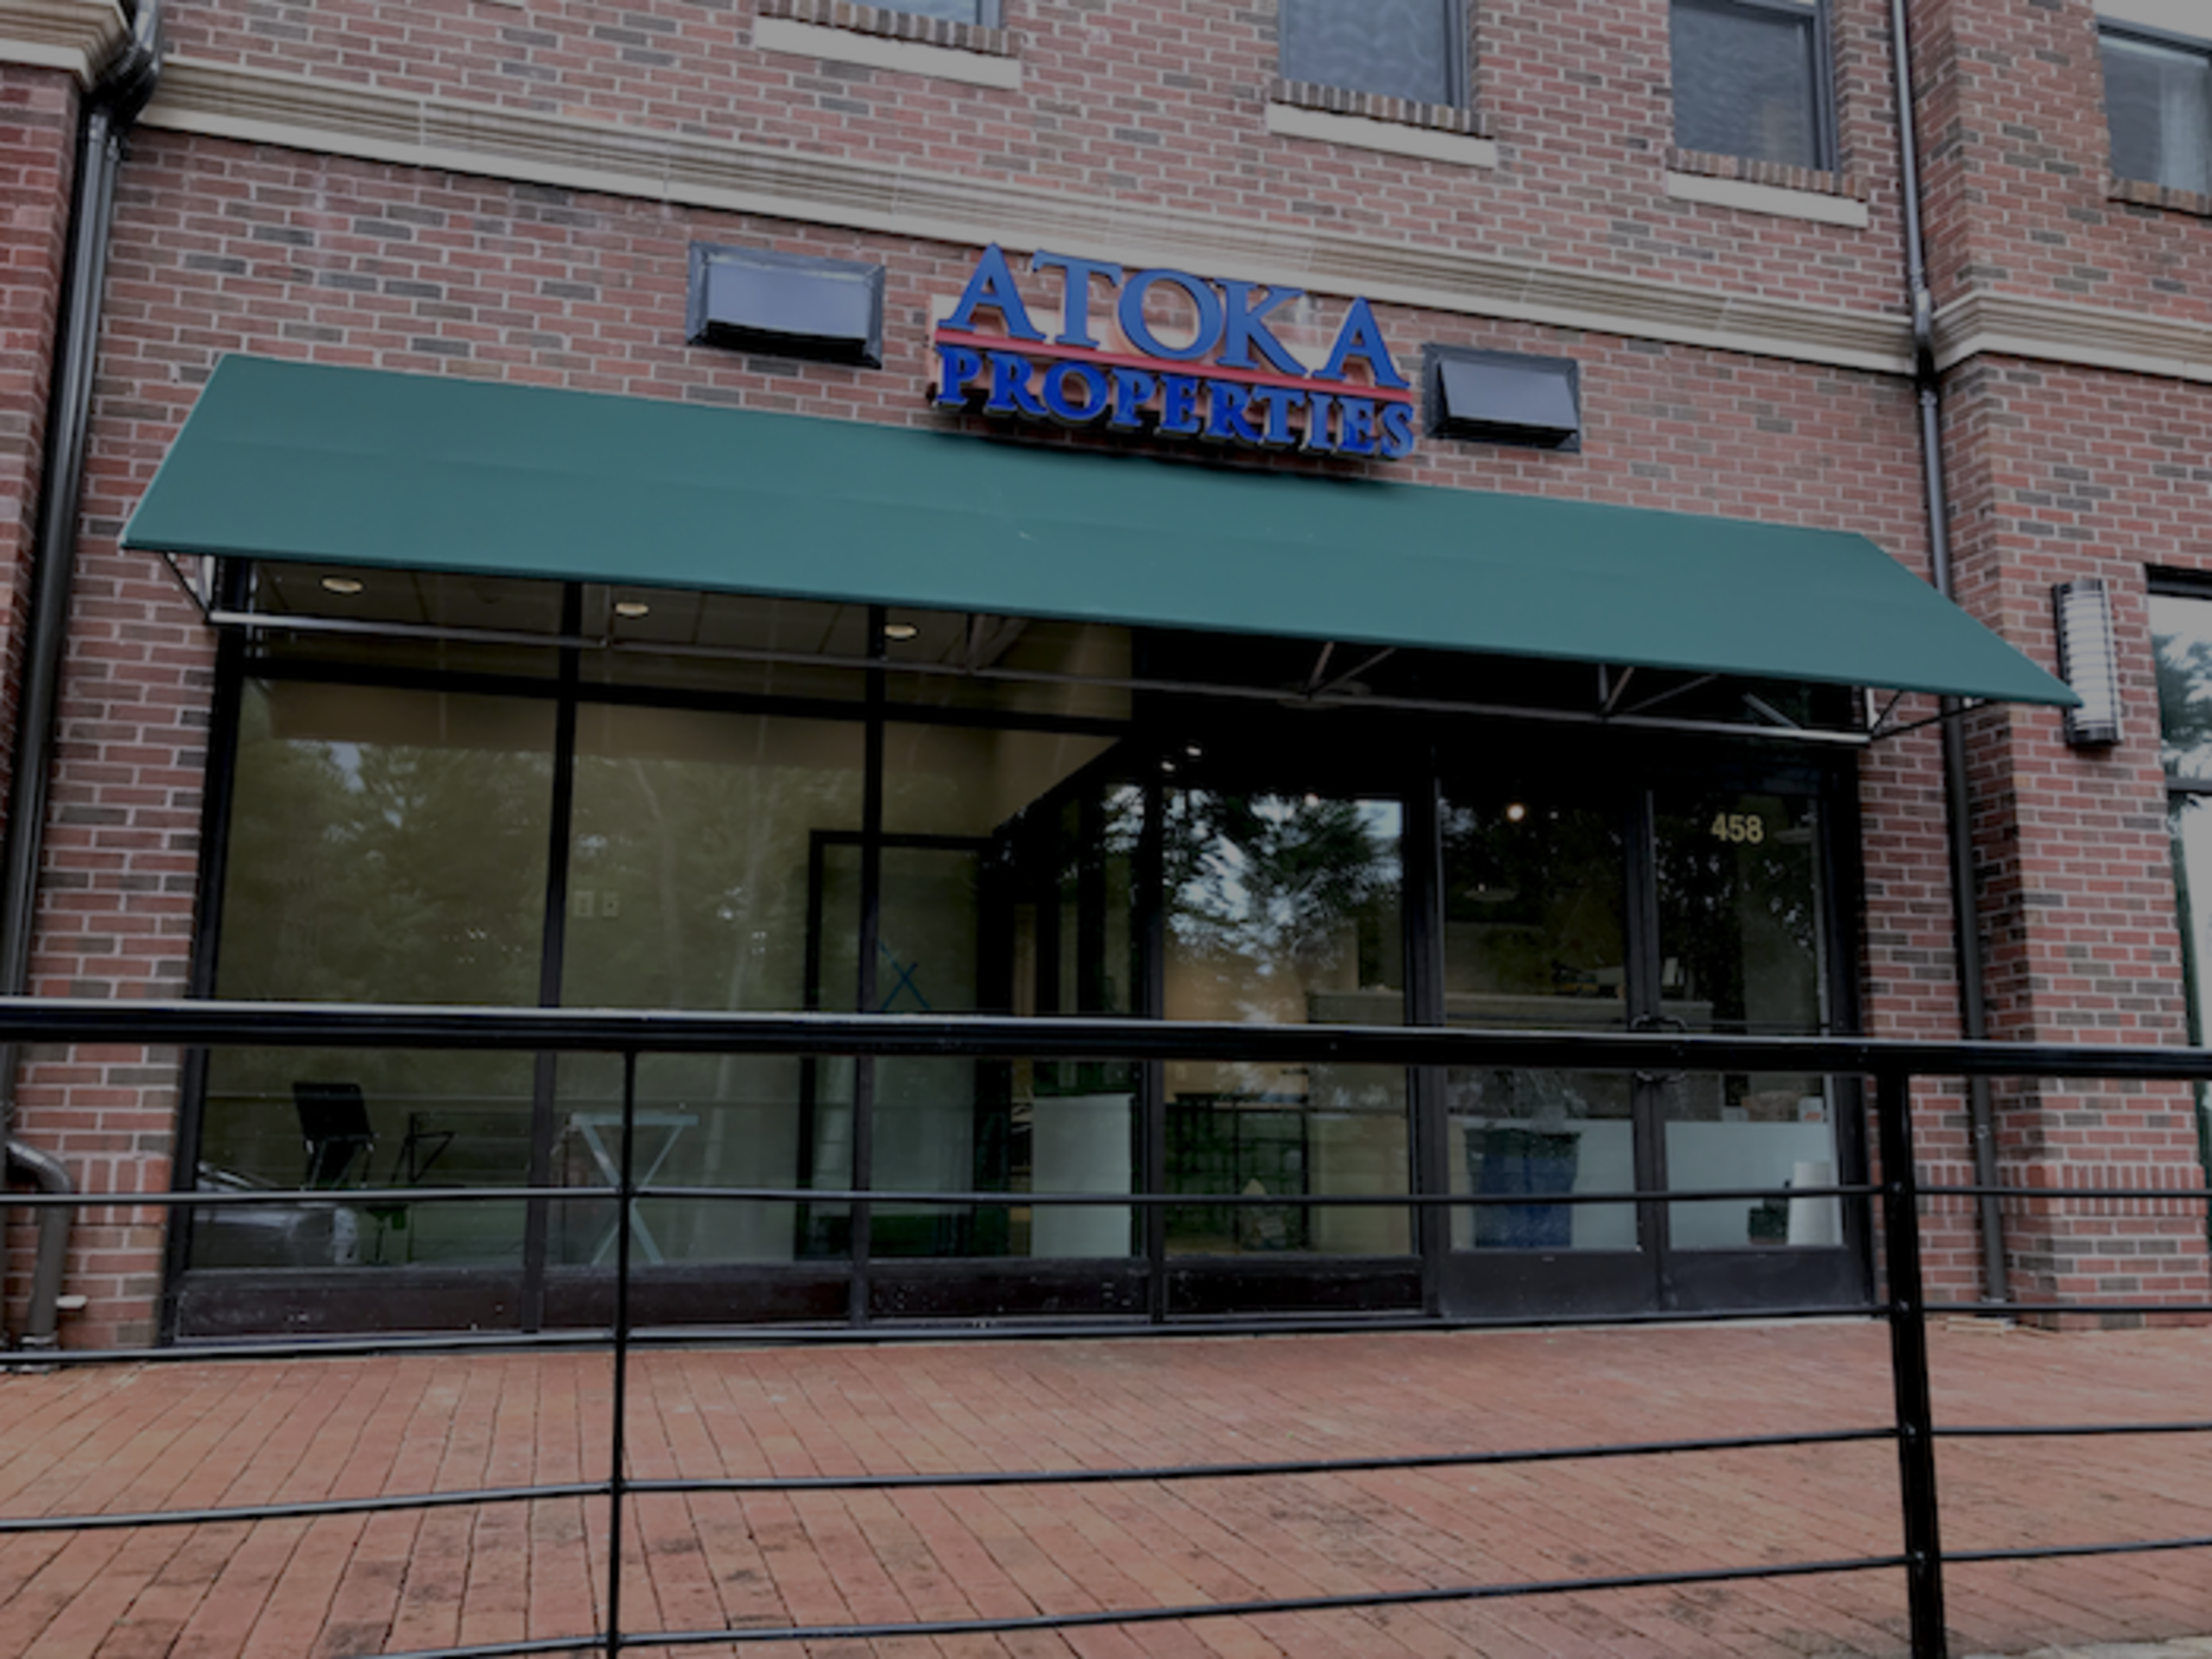 Atoka Properties Opens New Office in Crescent Place